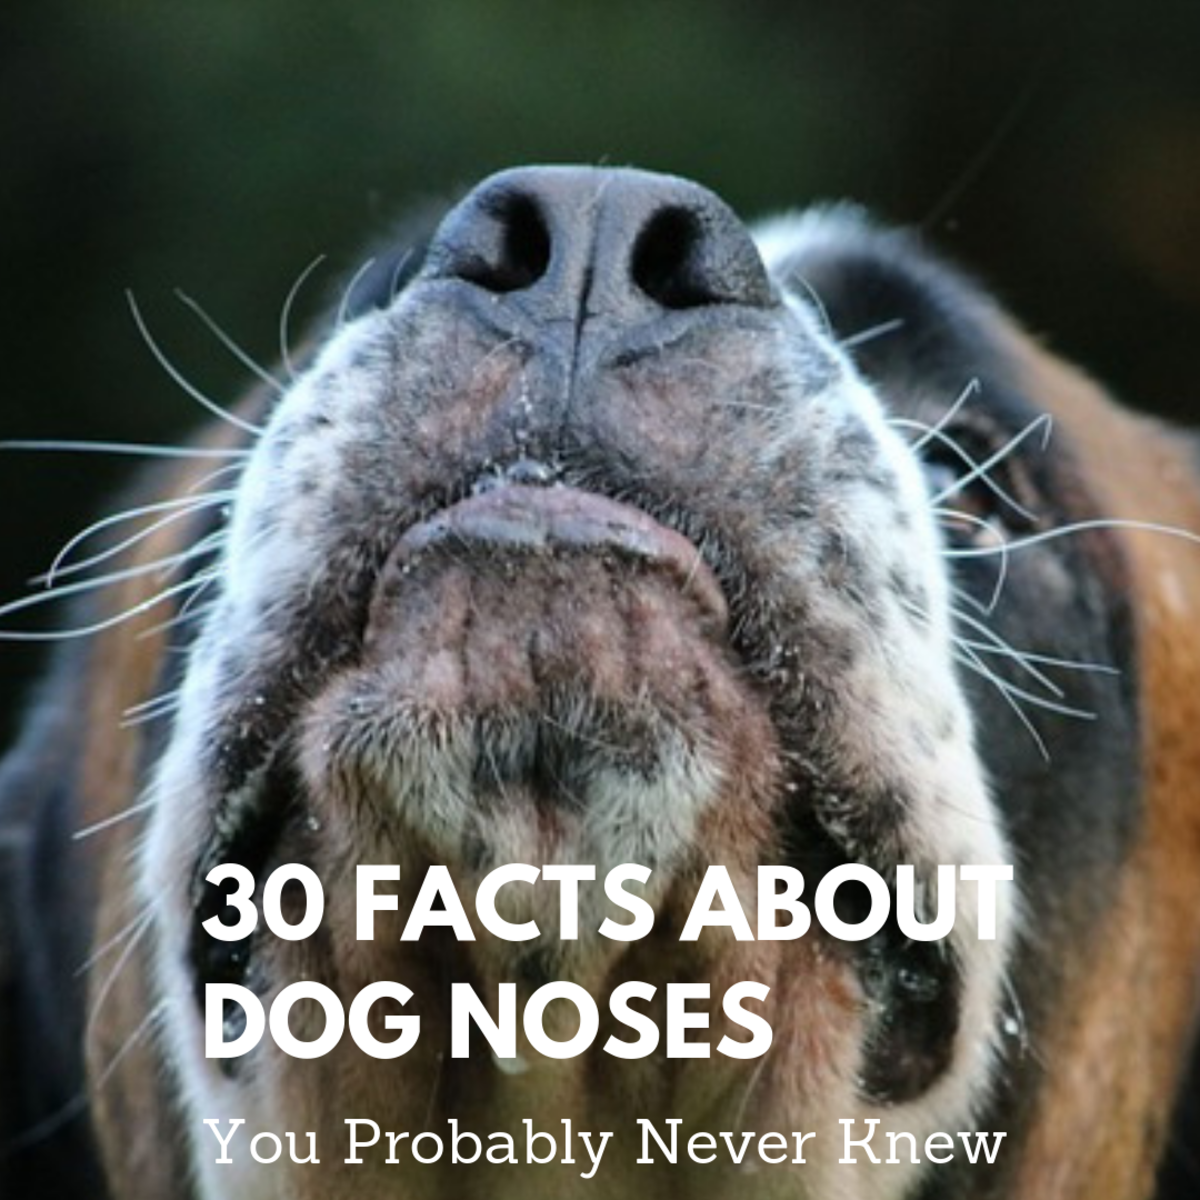 30 Mind-Blowing Facts About Dog Noses You Probably Didn't Know Until Now